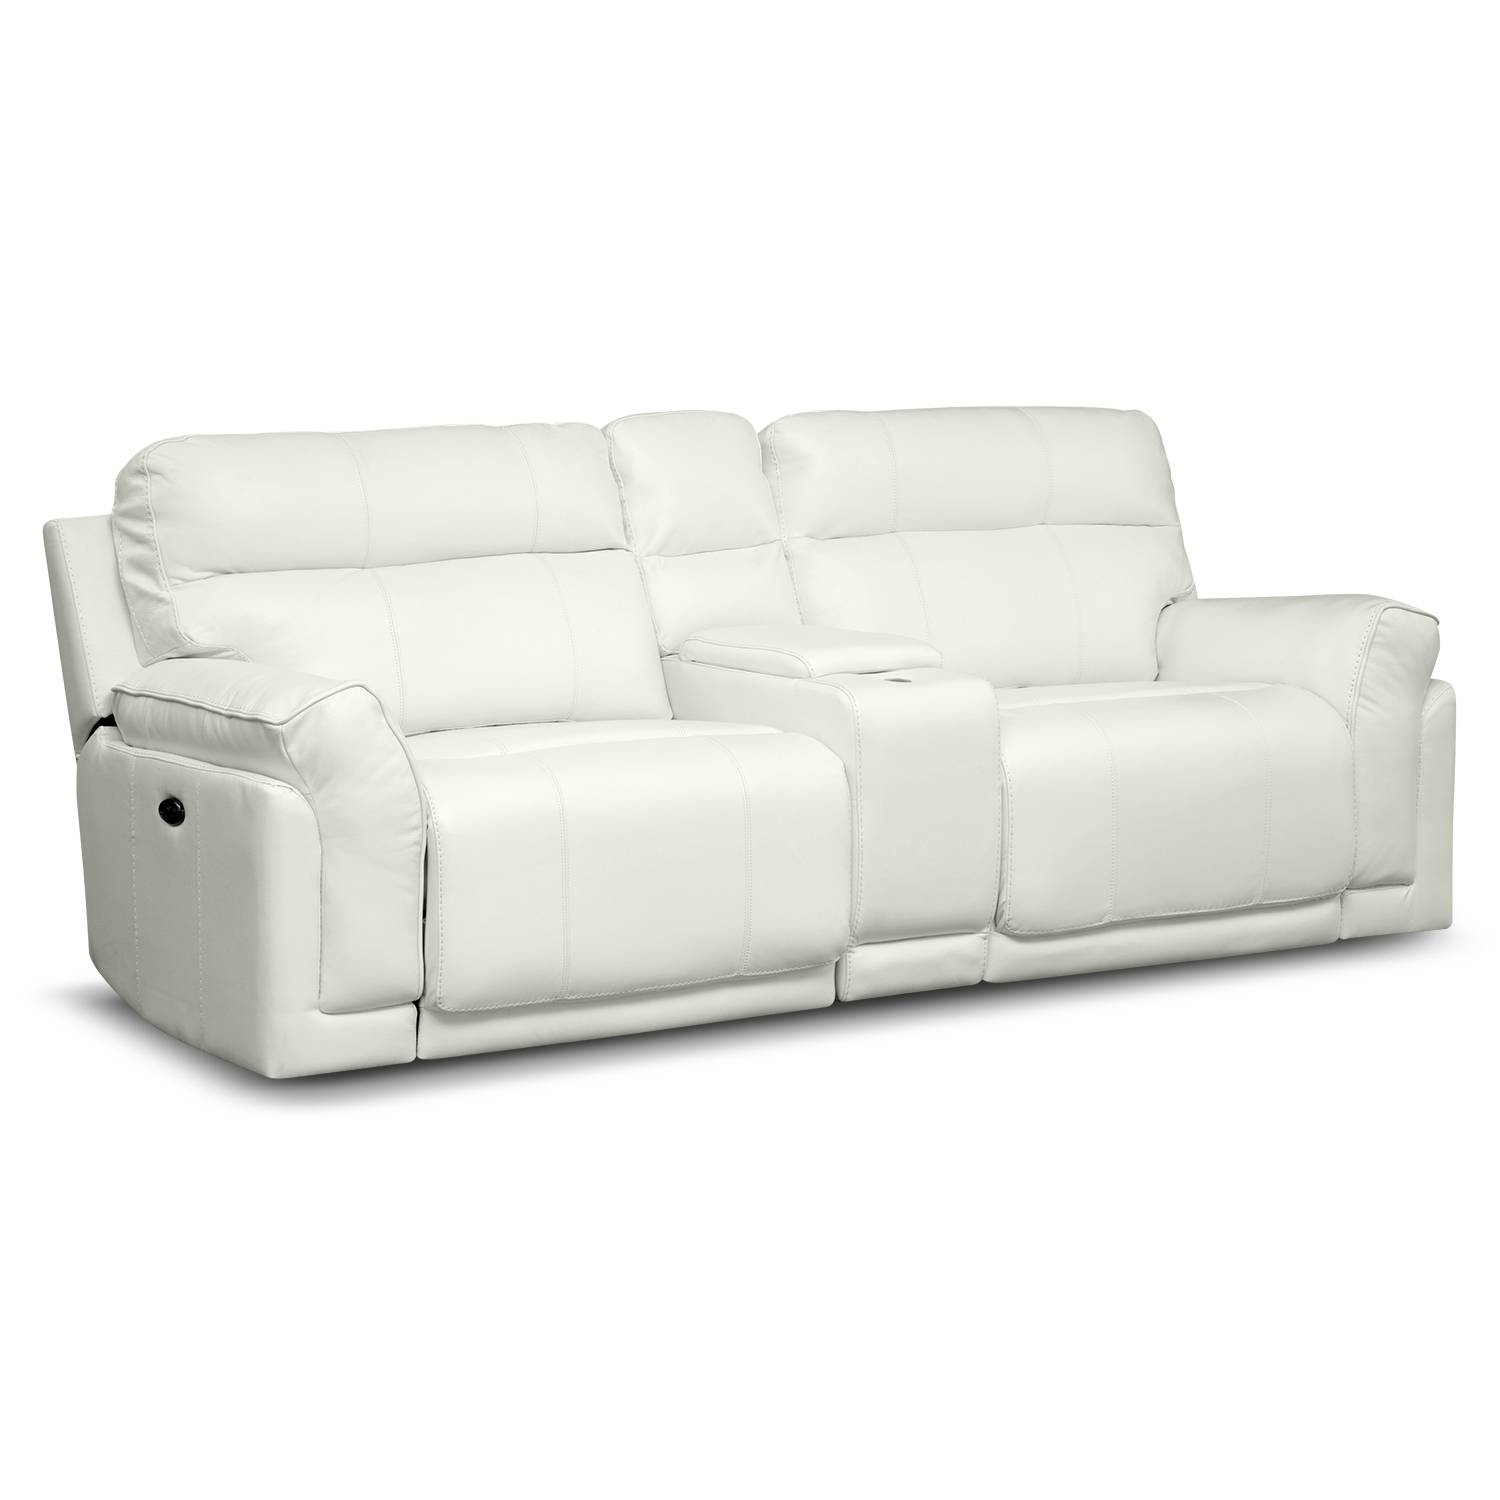 Sofas Center : Magnificent Reclining Sofath Console Images Concept Pertaining To Sofas With Consoles (View 14 of 30)